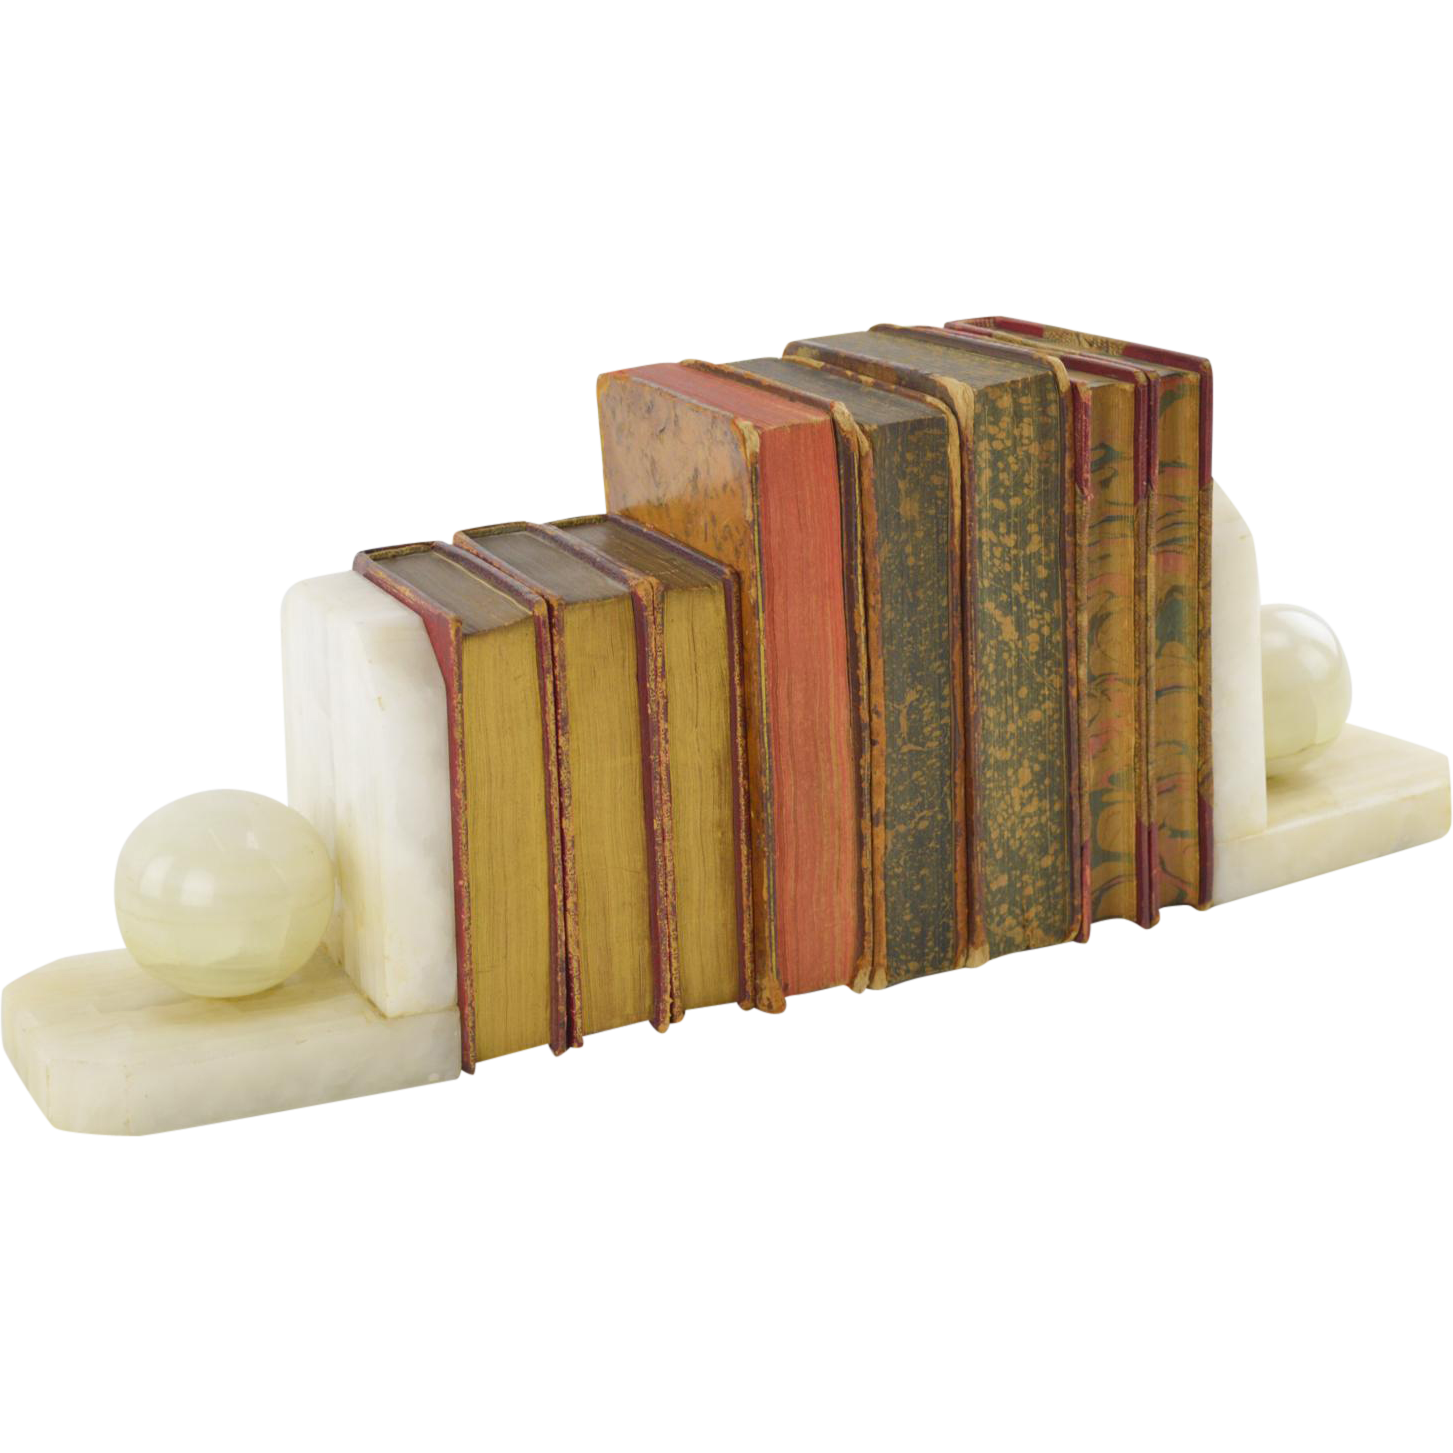 Stone Bookends With Decorative Antique Books Sold On Ruby Lane